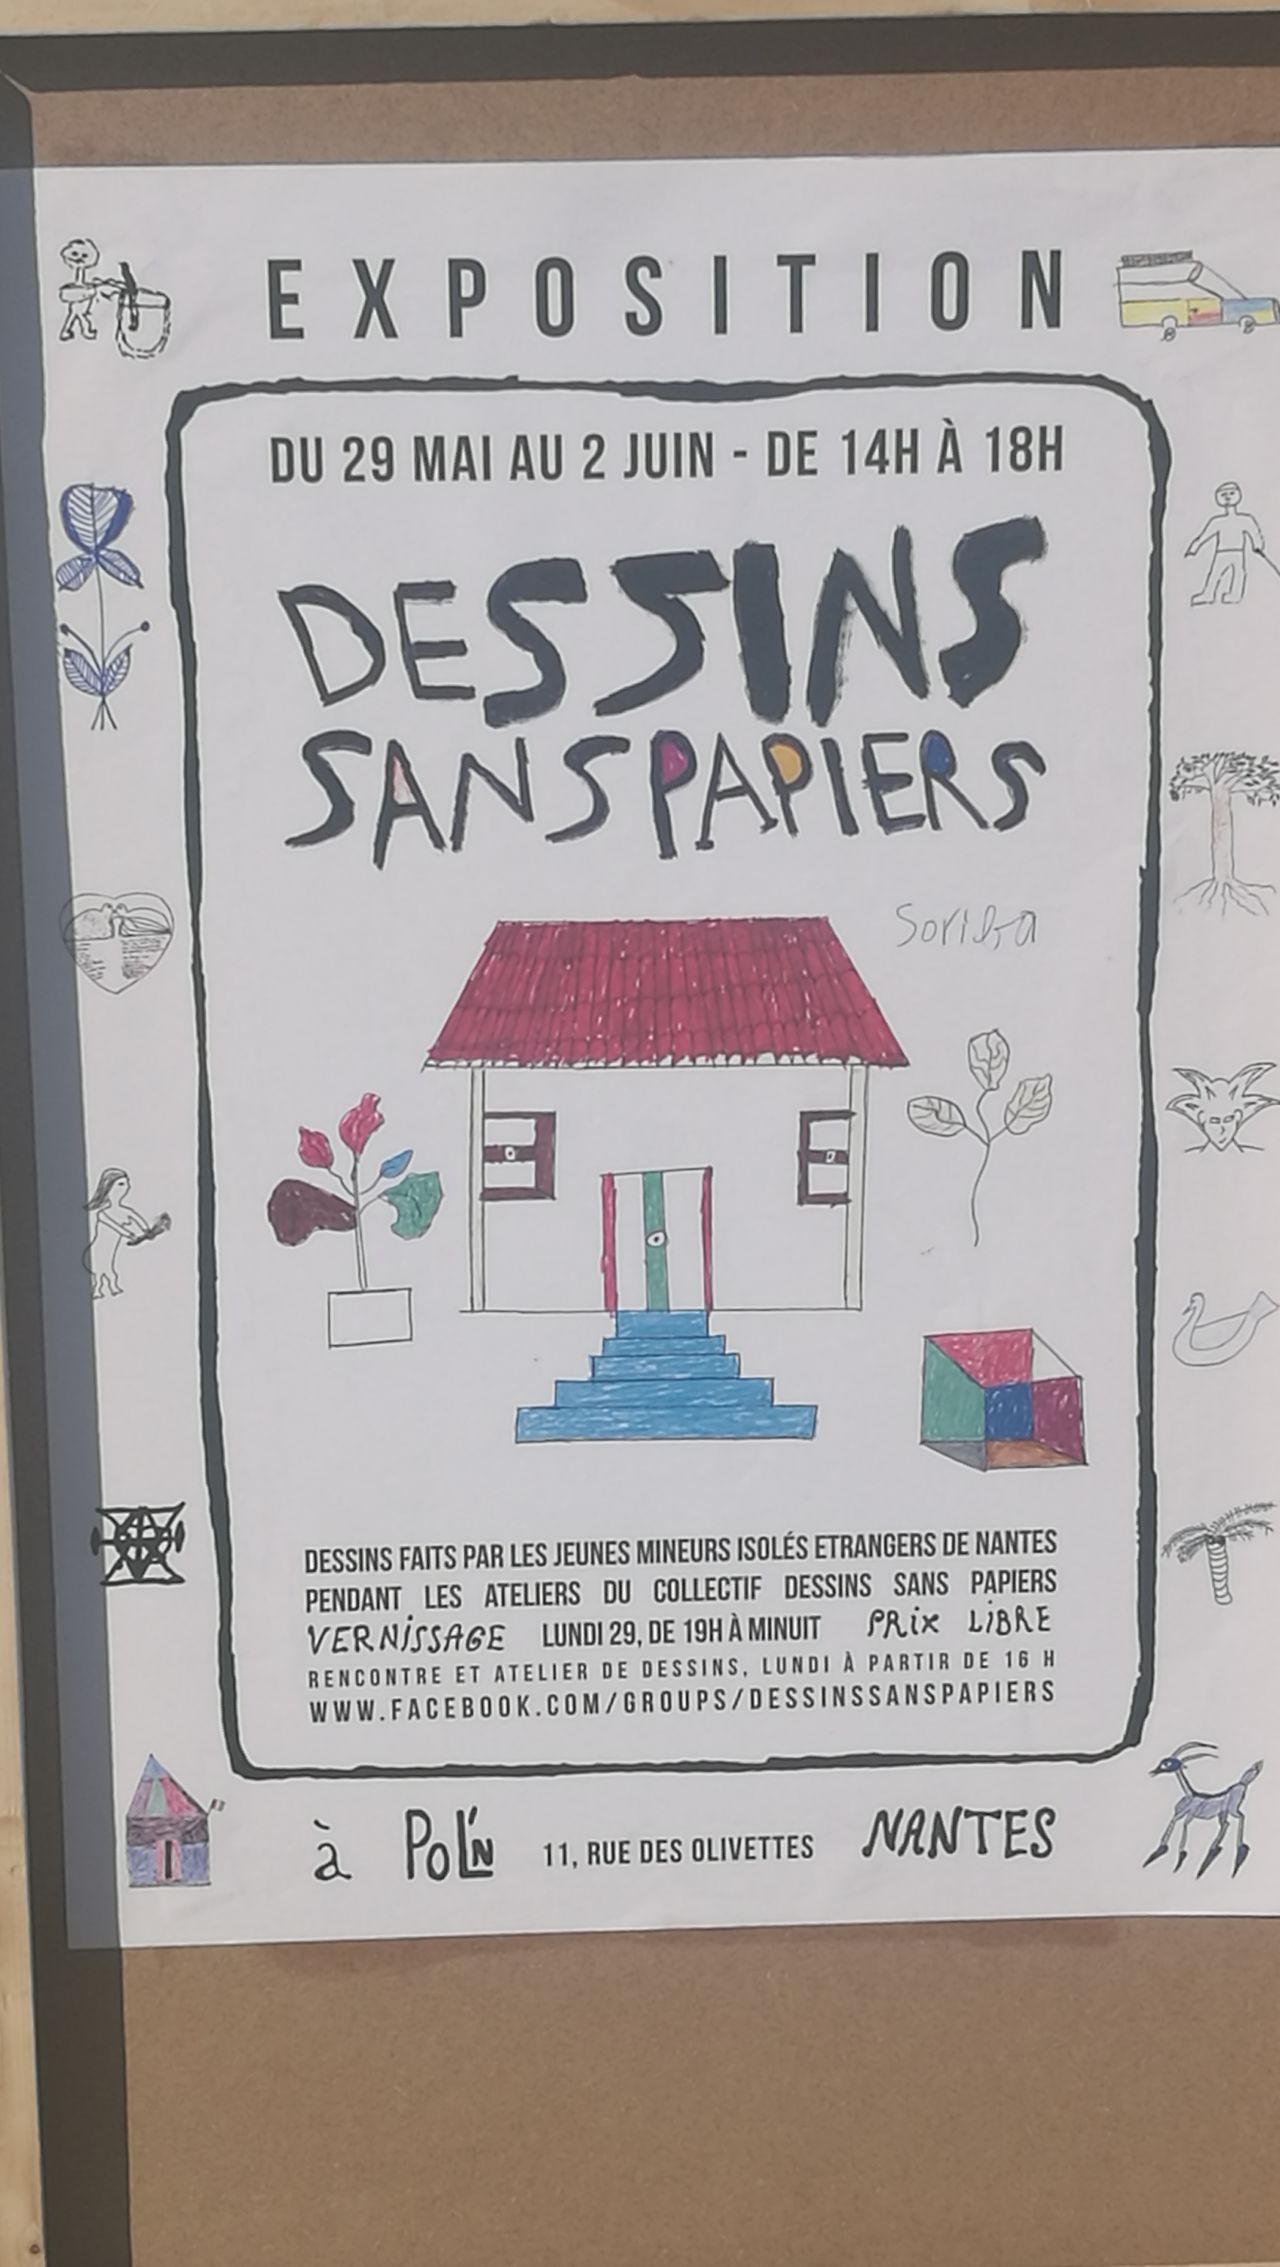 Nopapers Nantes Drawing Exposition Text Business Finance And Industry Communication Indoors  Close-up Instructions No People Day